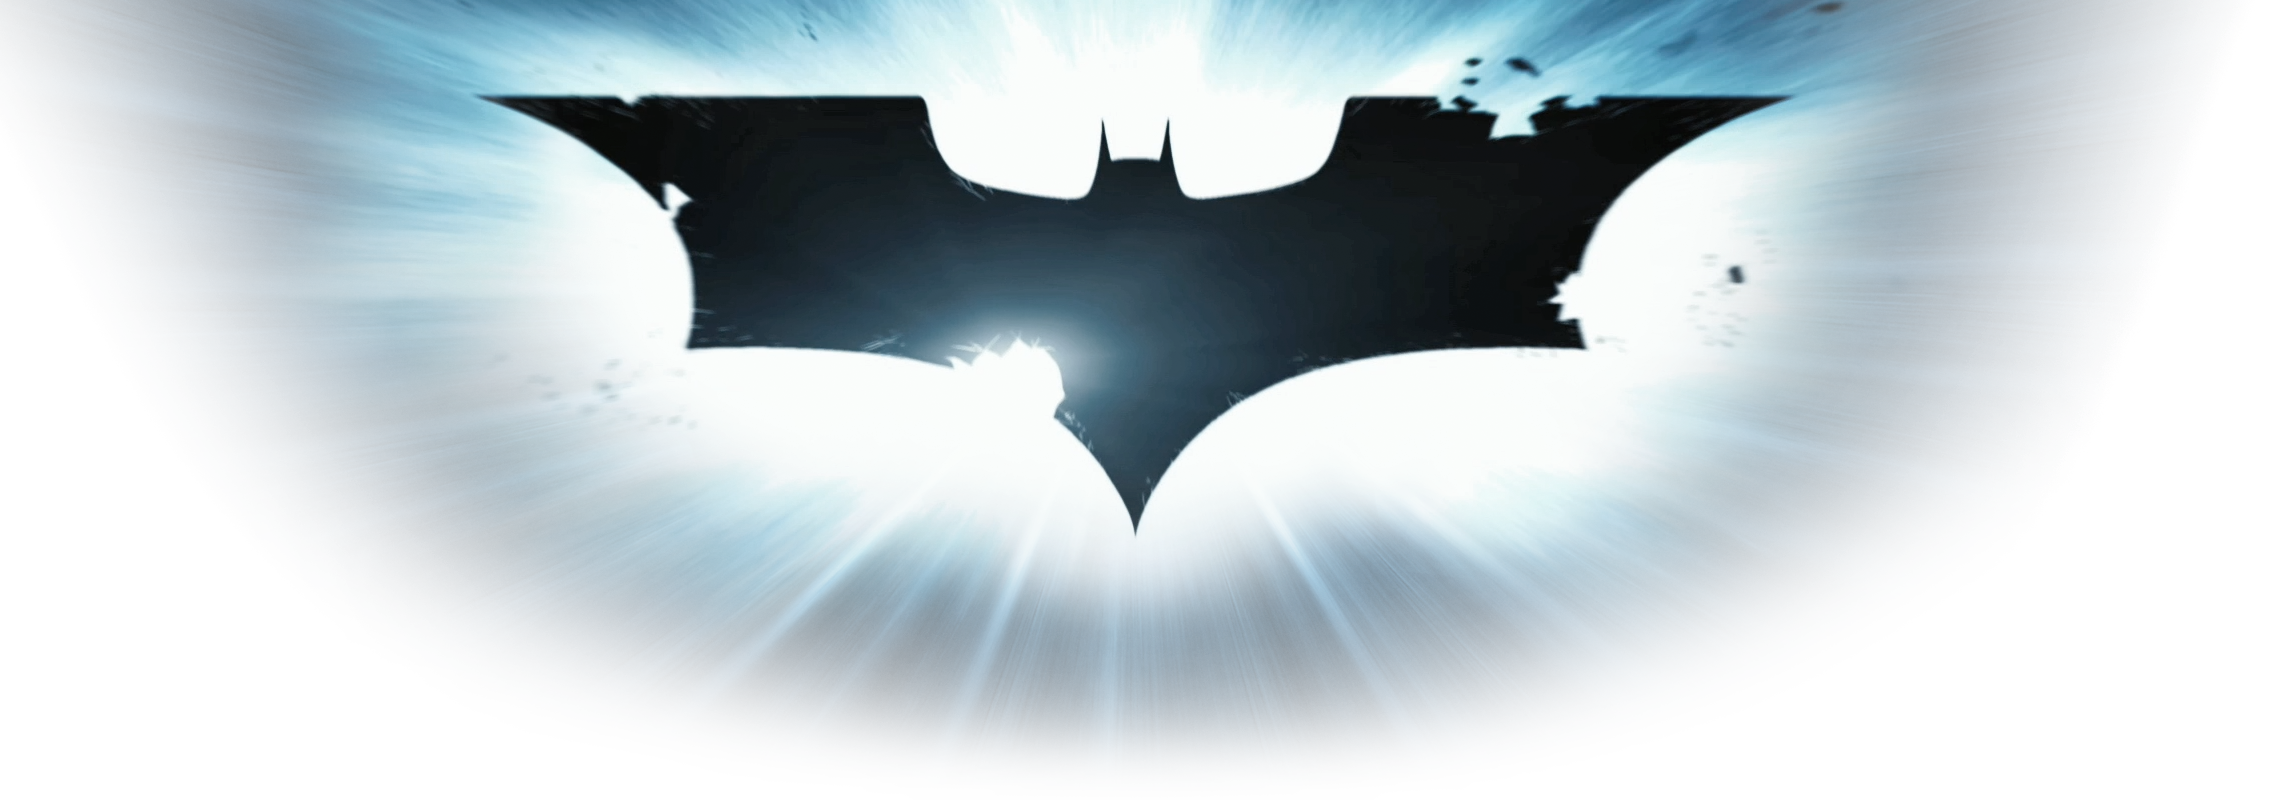 Dark Knight Movie Icons Bat Symbol Burst